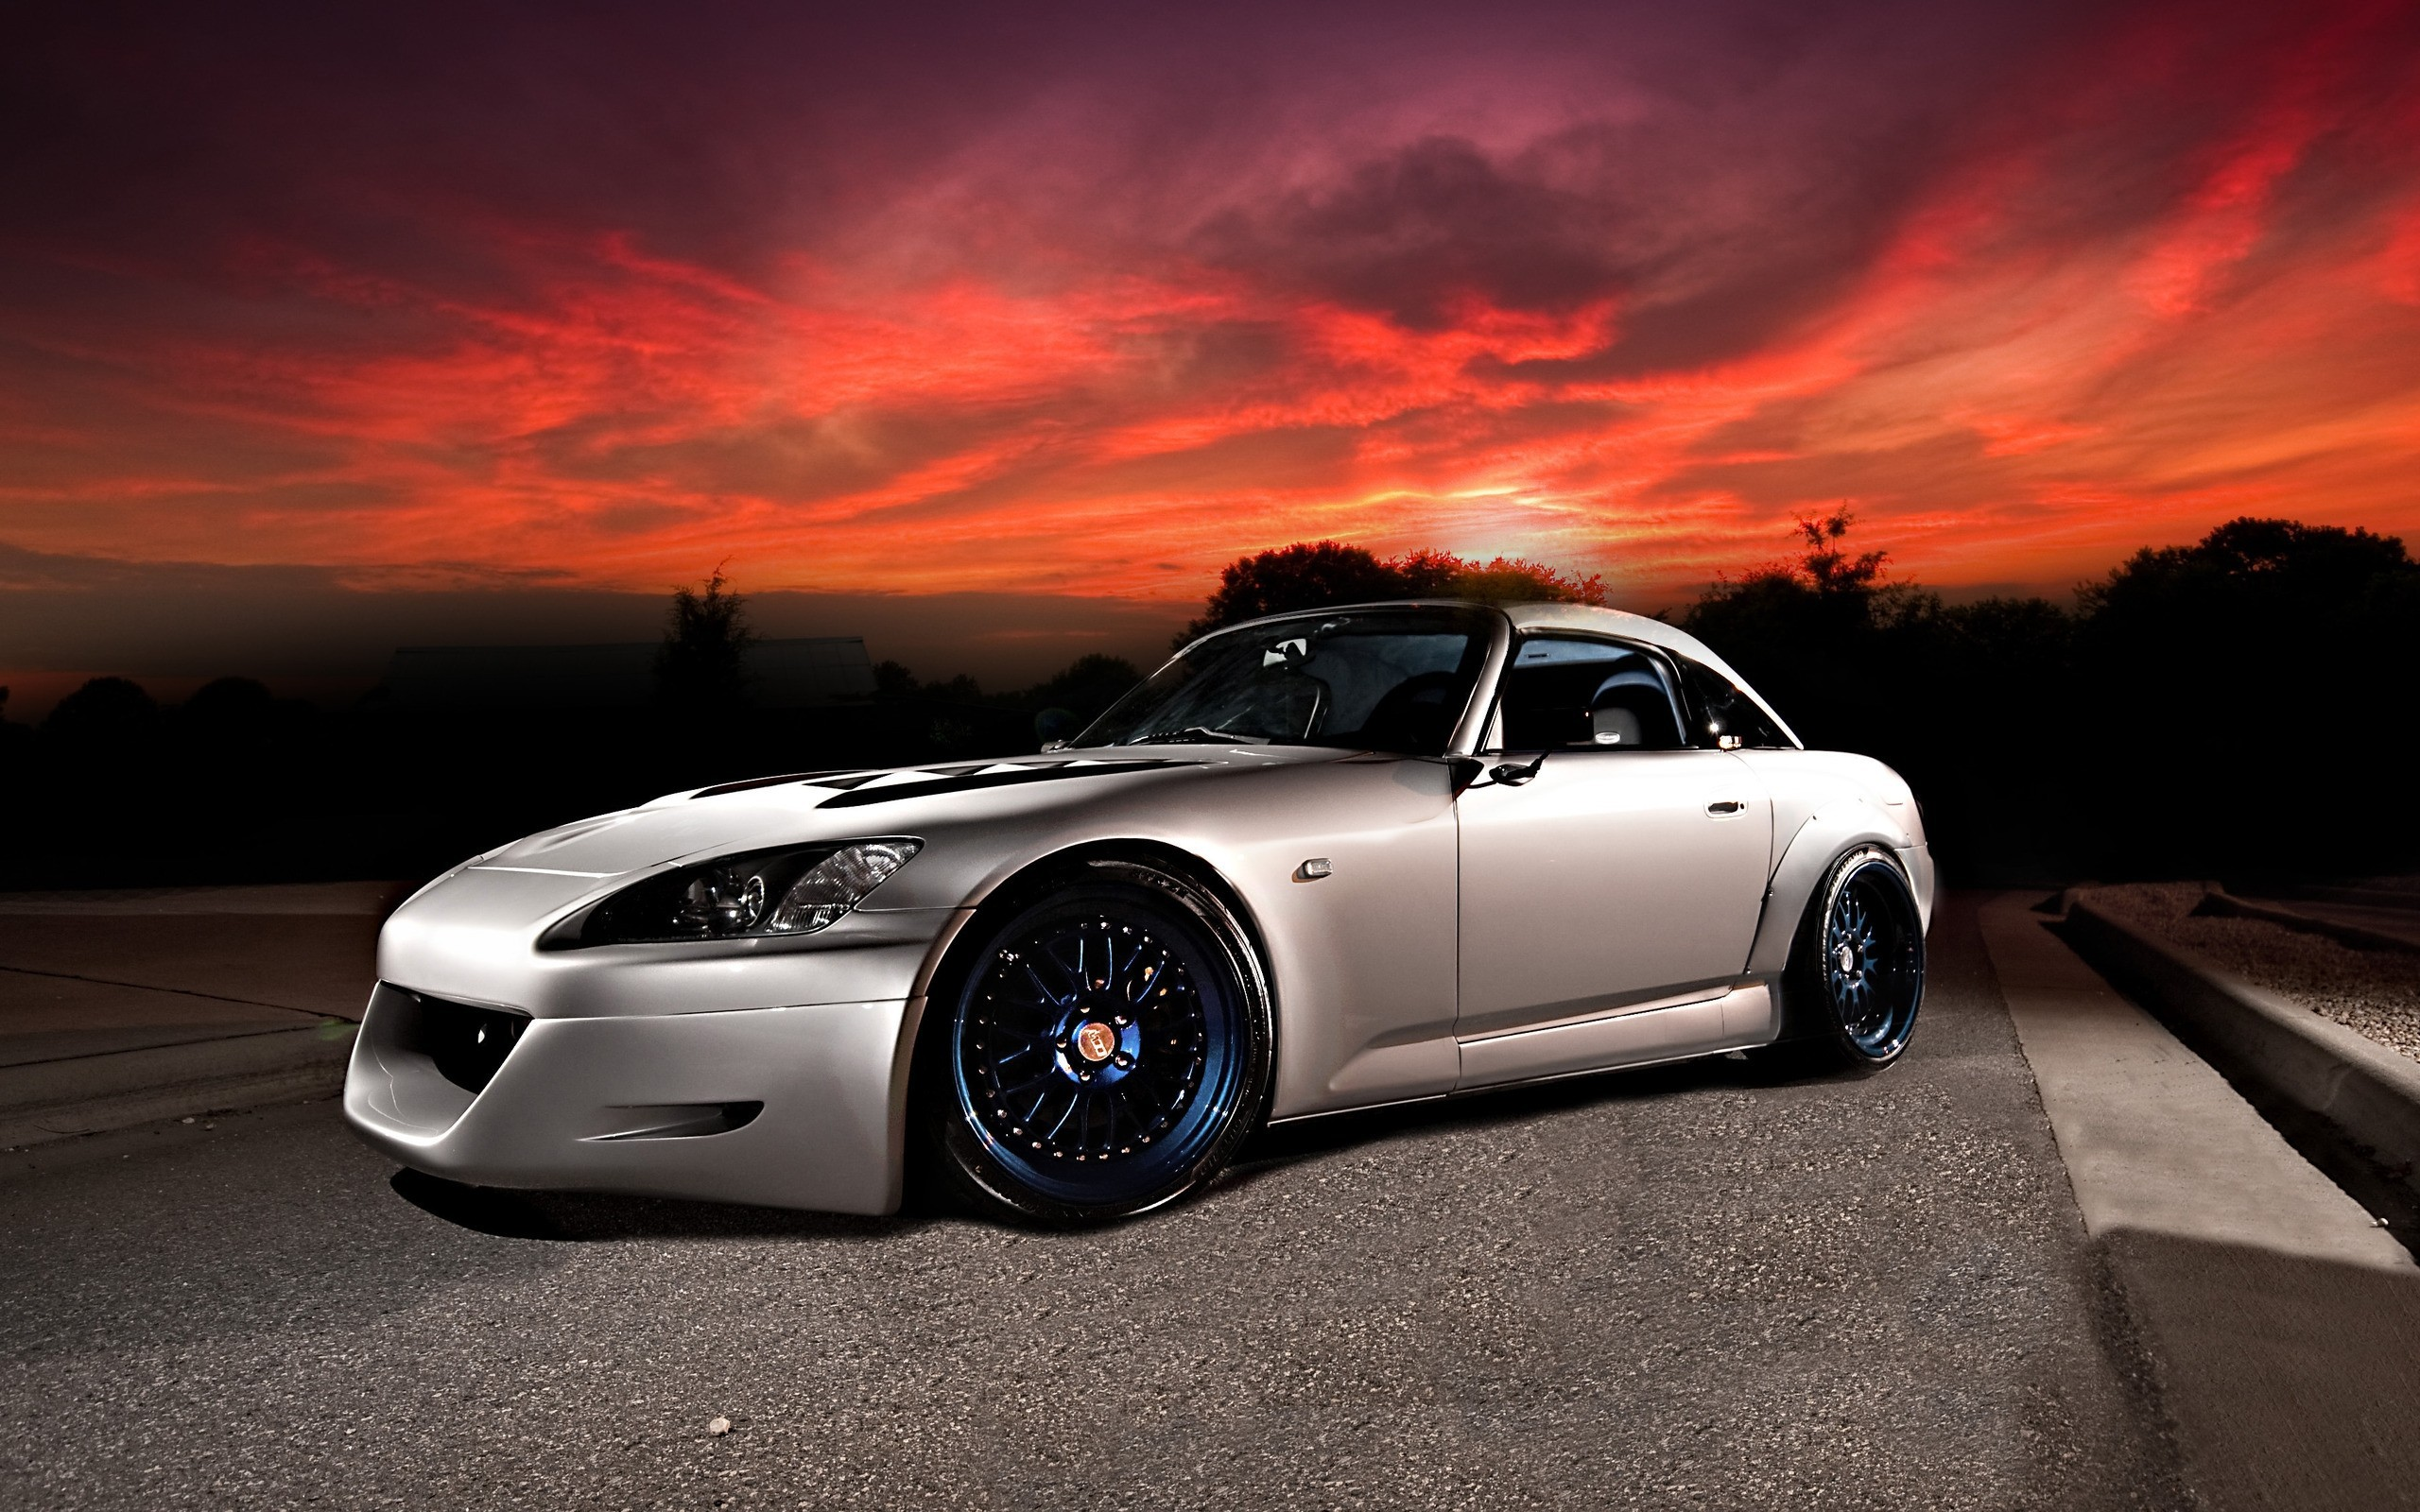 White Honda S2000 wallpapers and images   wallpapers pictures photos 2560x1600